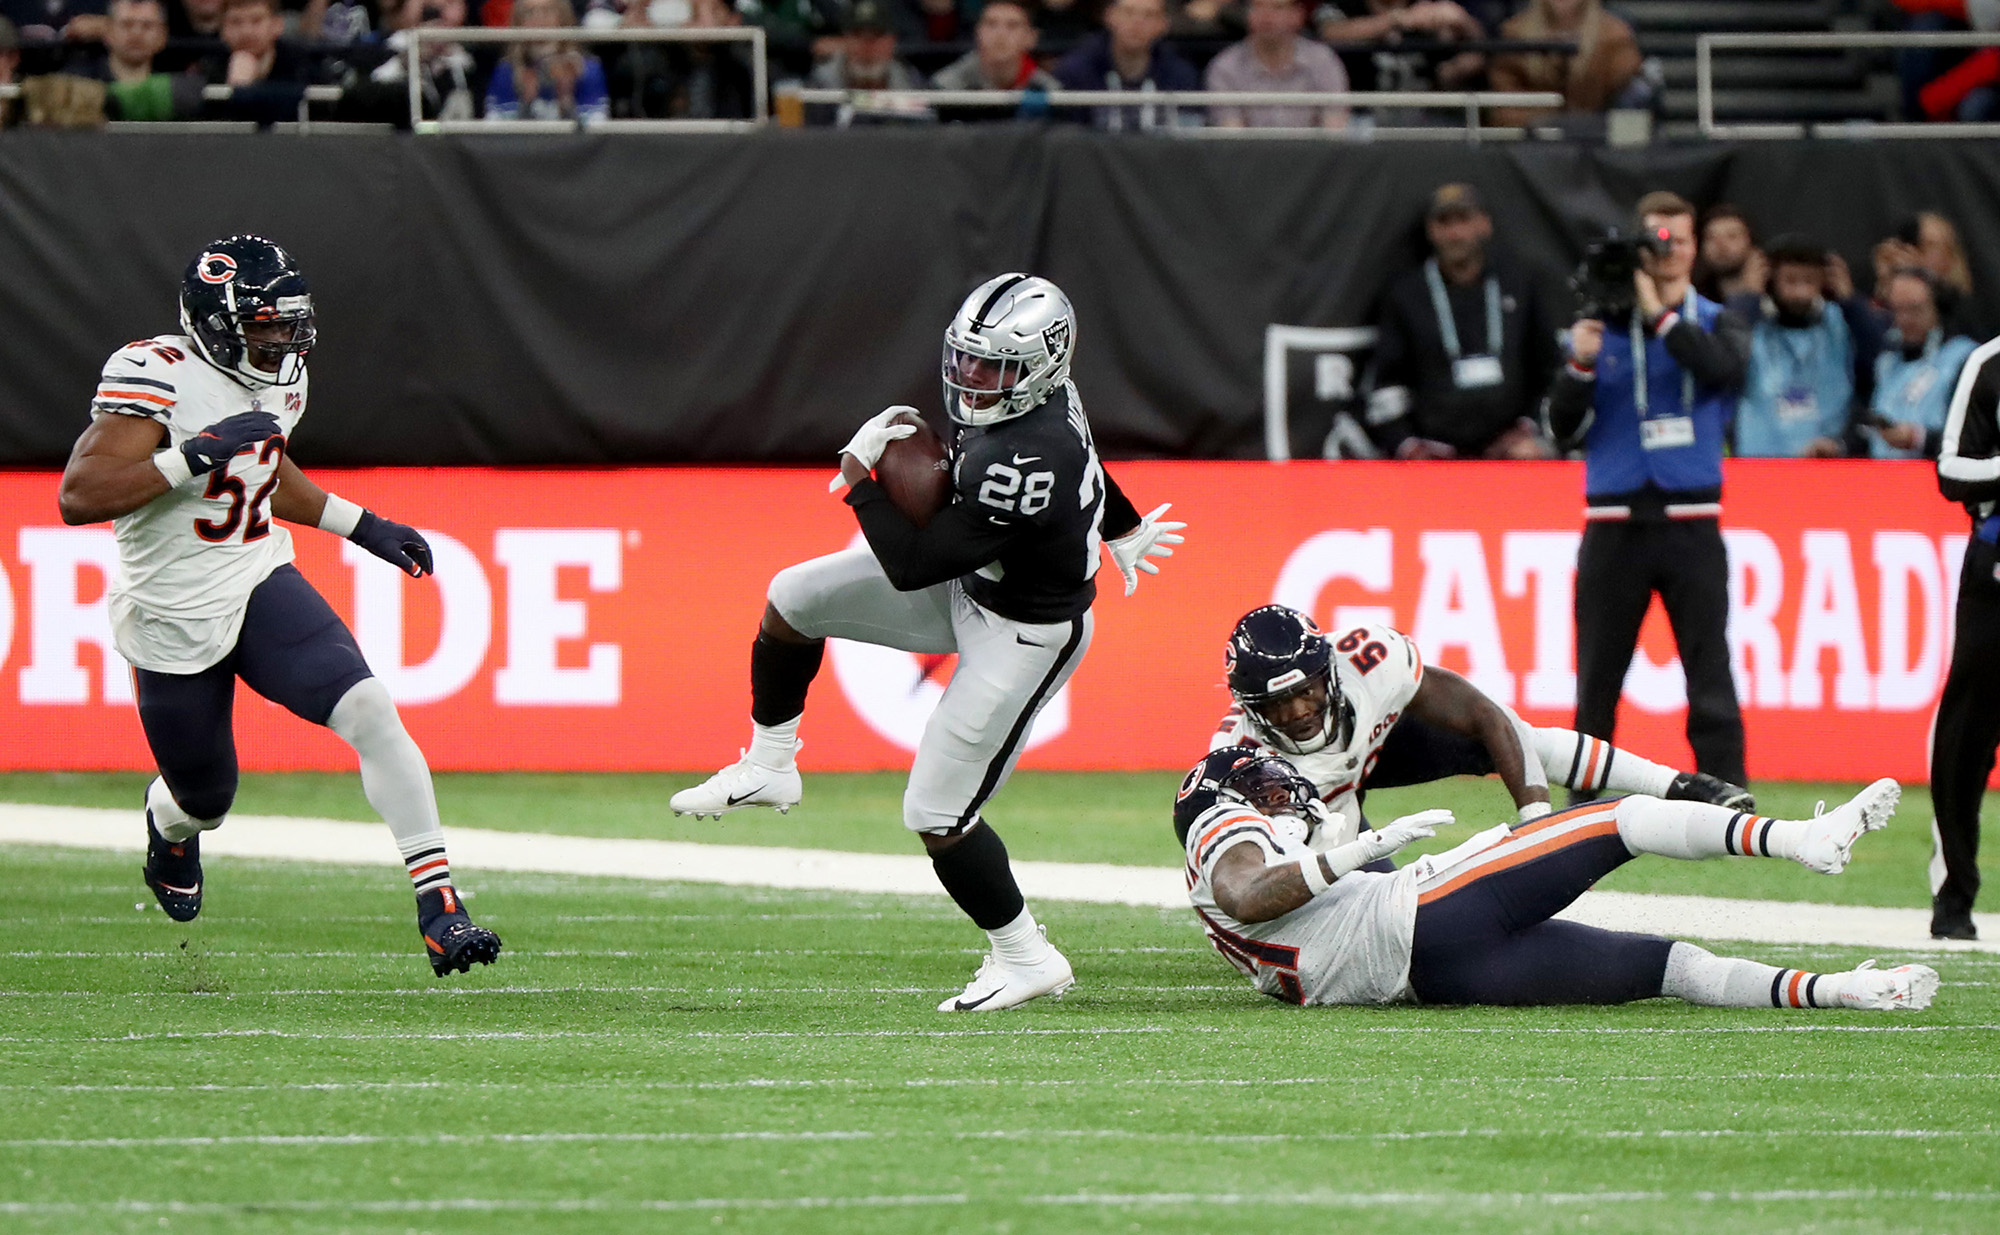 Oakland Raiders running back Josh Jacobs breaks free from the Chicago Bears defense in the first quarter against the Oakland Raiders on October 6, 2019, at Tottenham Hotspur Stadium in London.